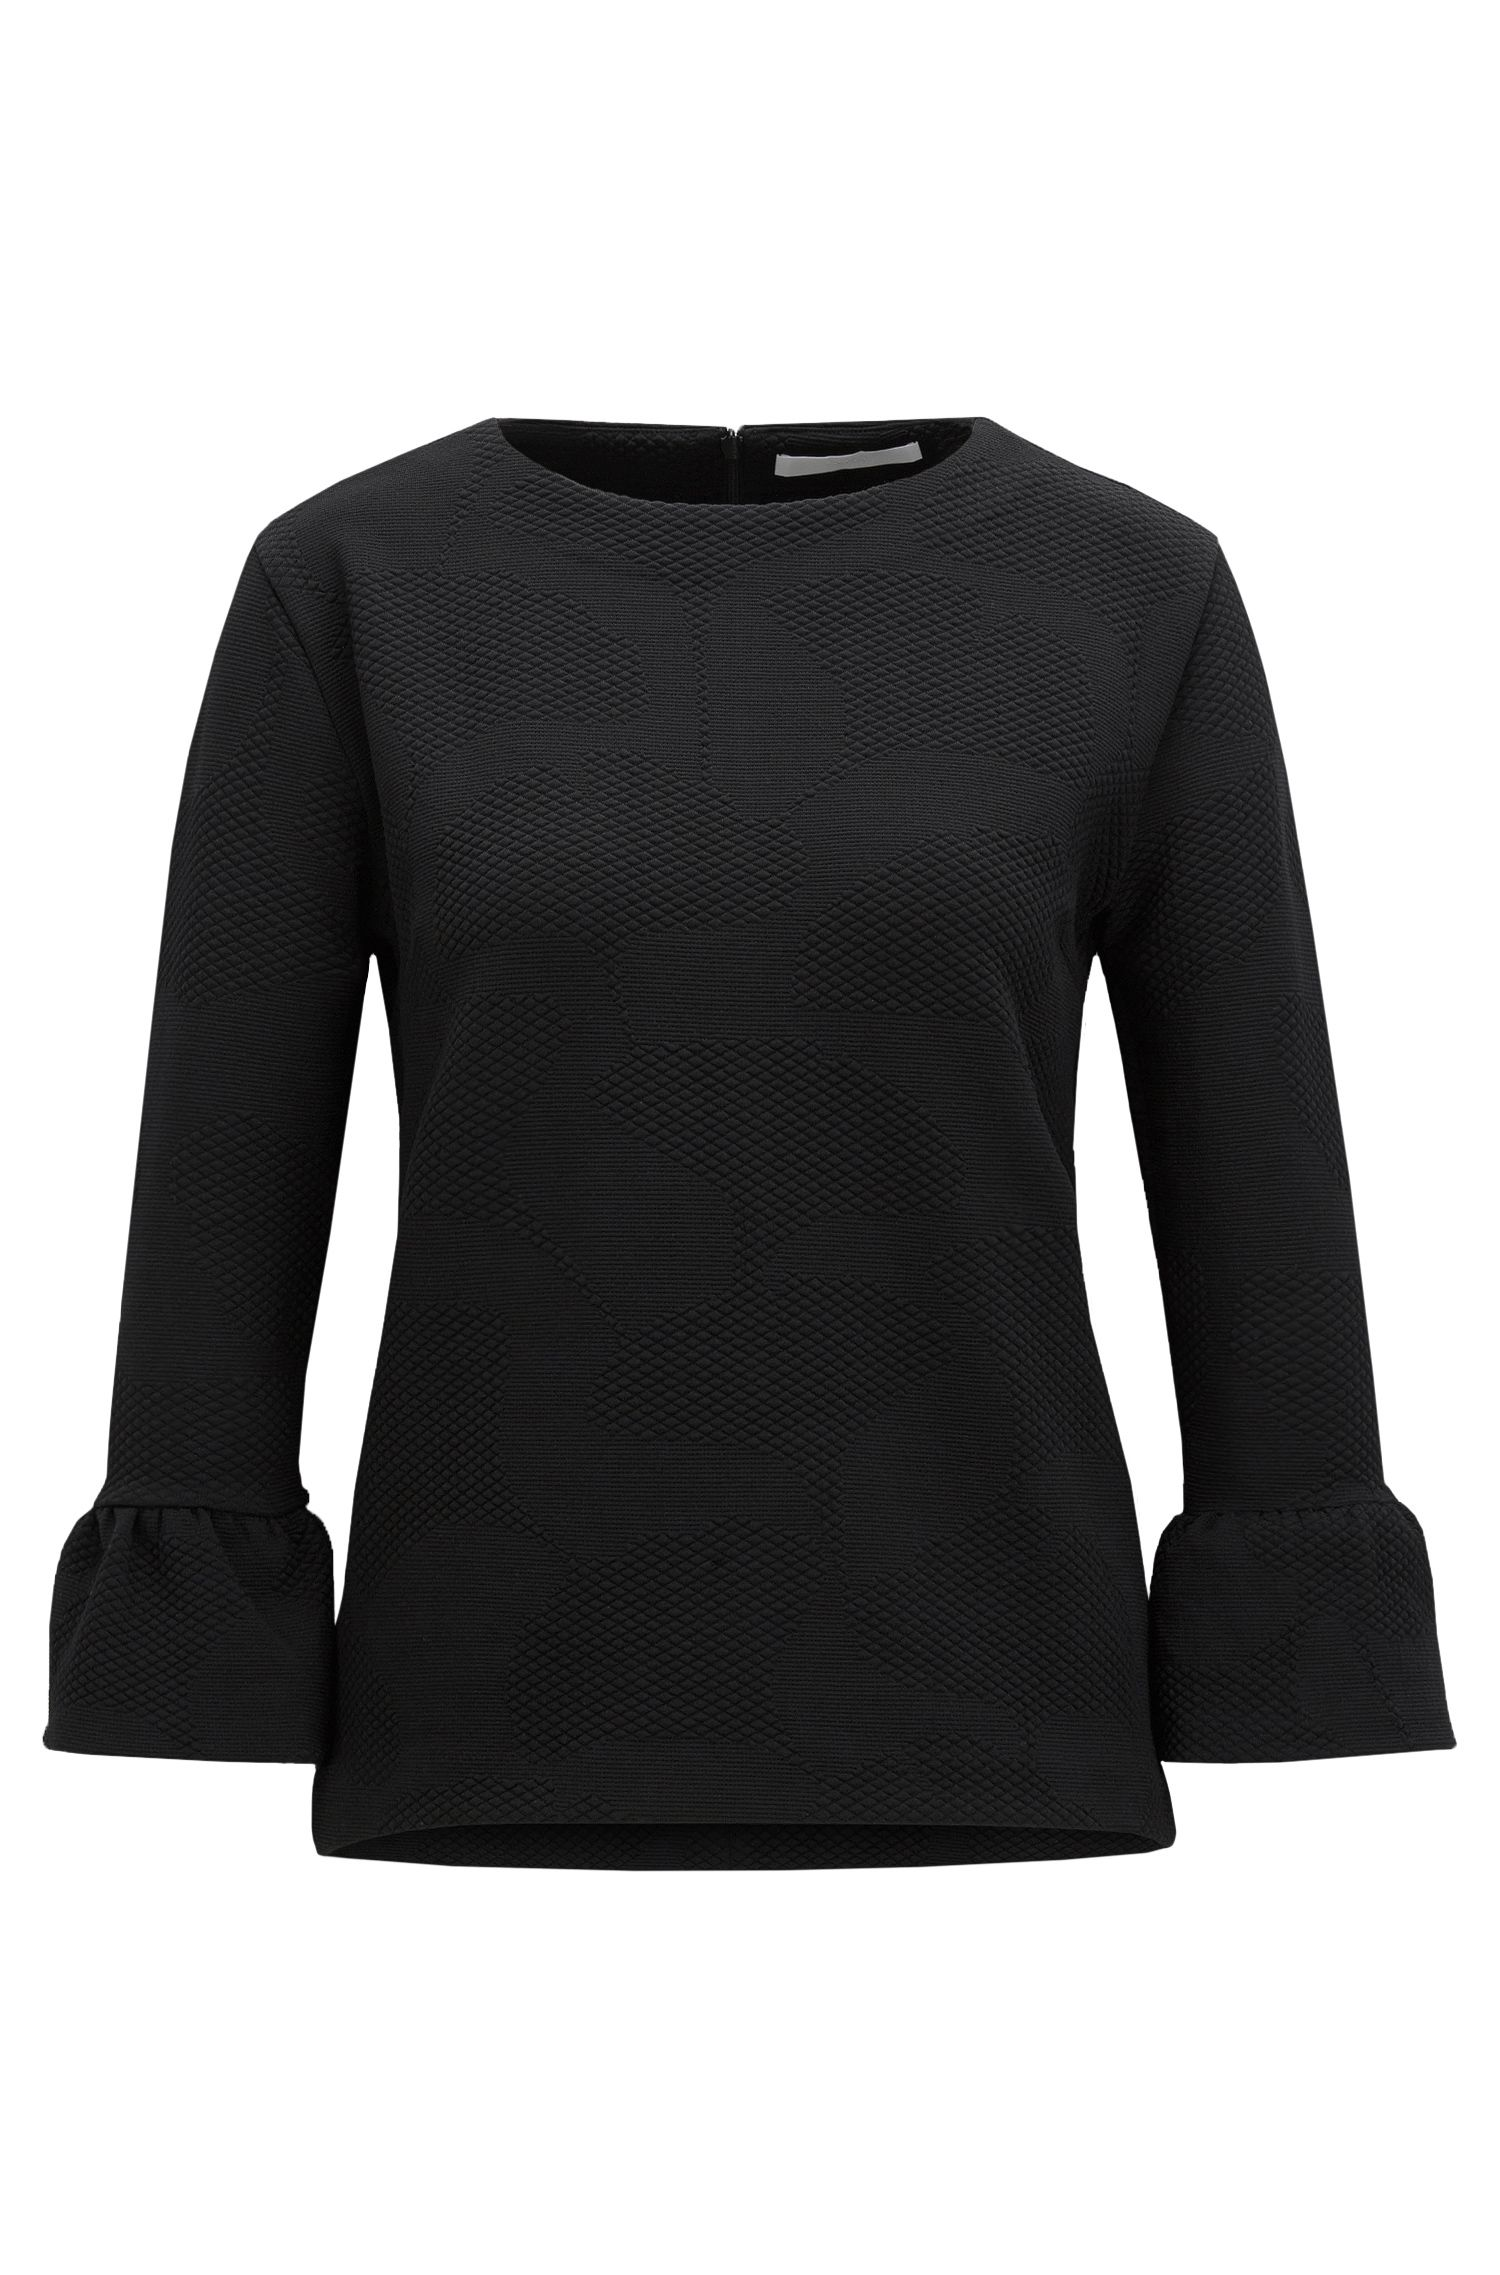 Regular-Fit Pullover aus strukturiertem Stretch-Gewebe